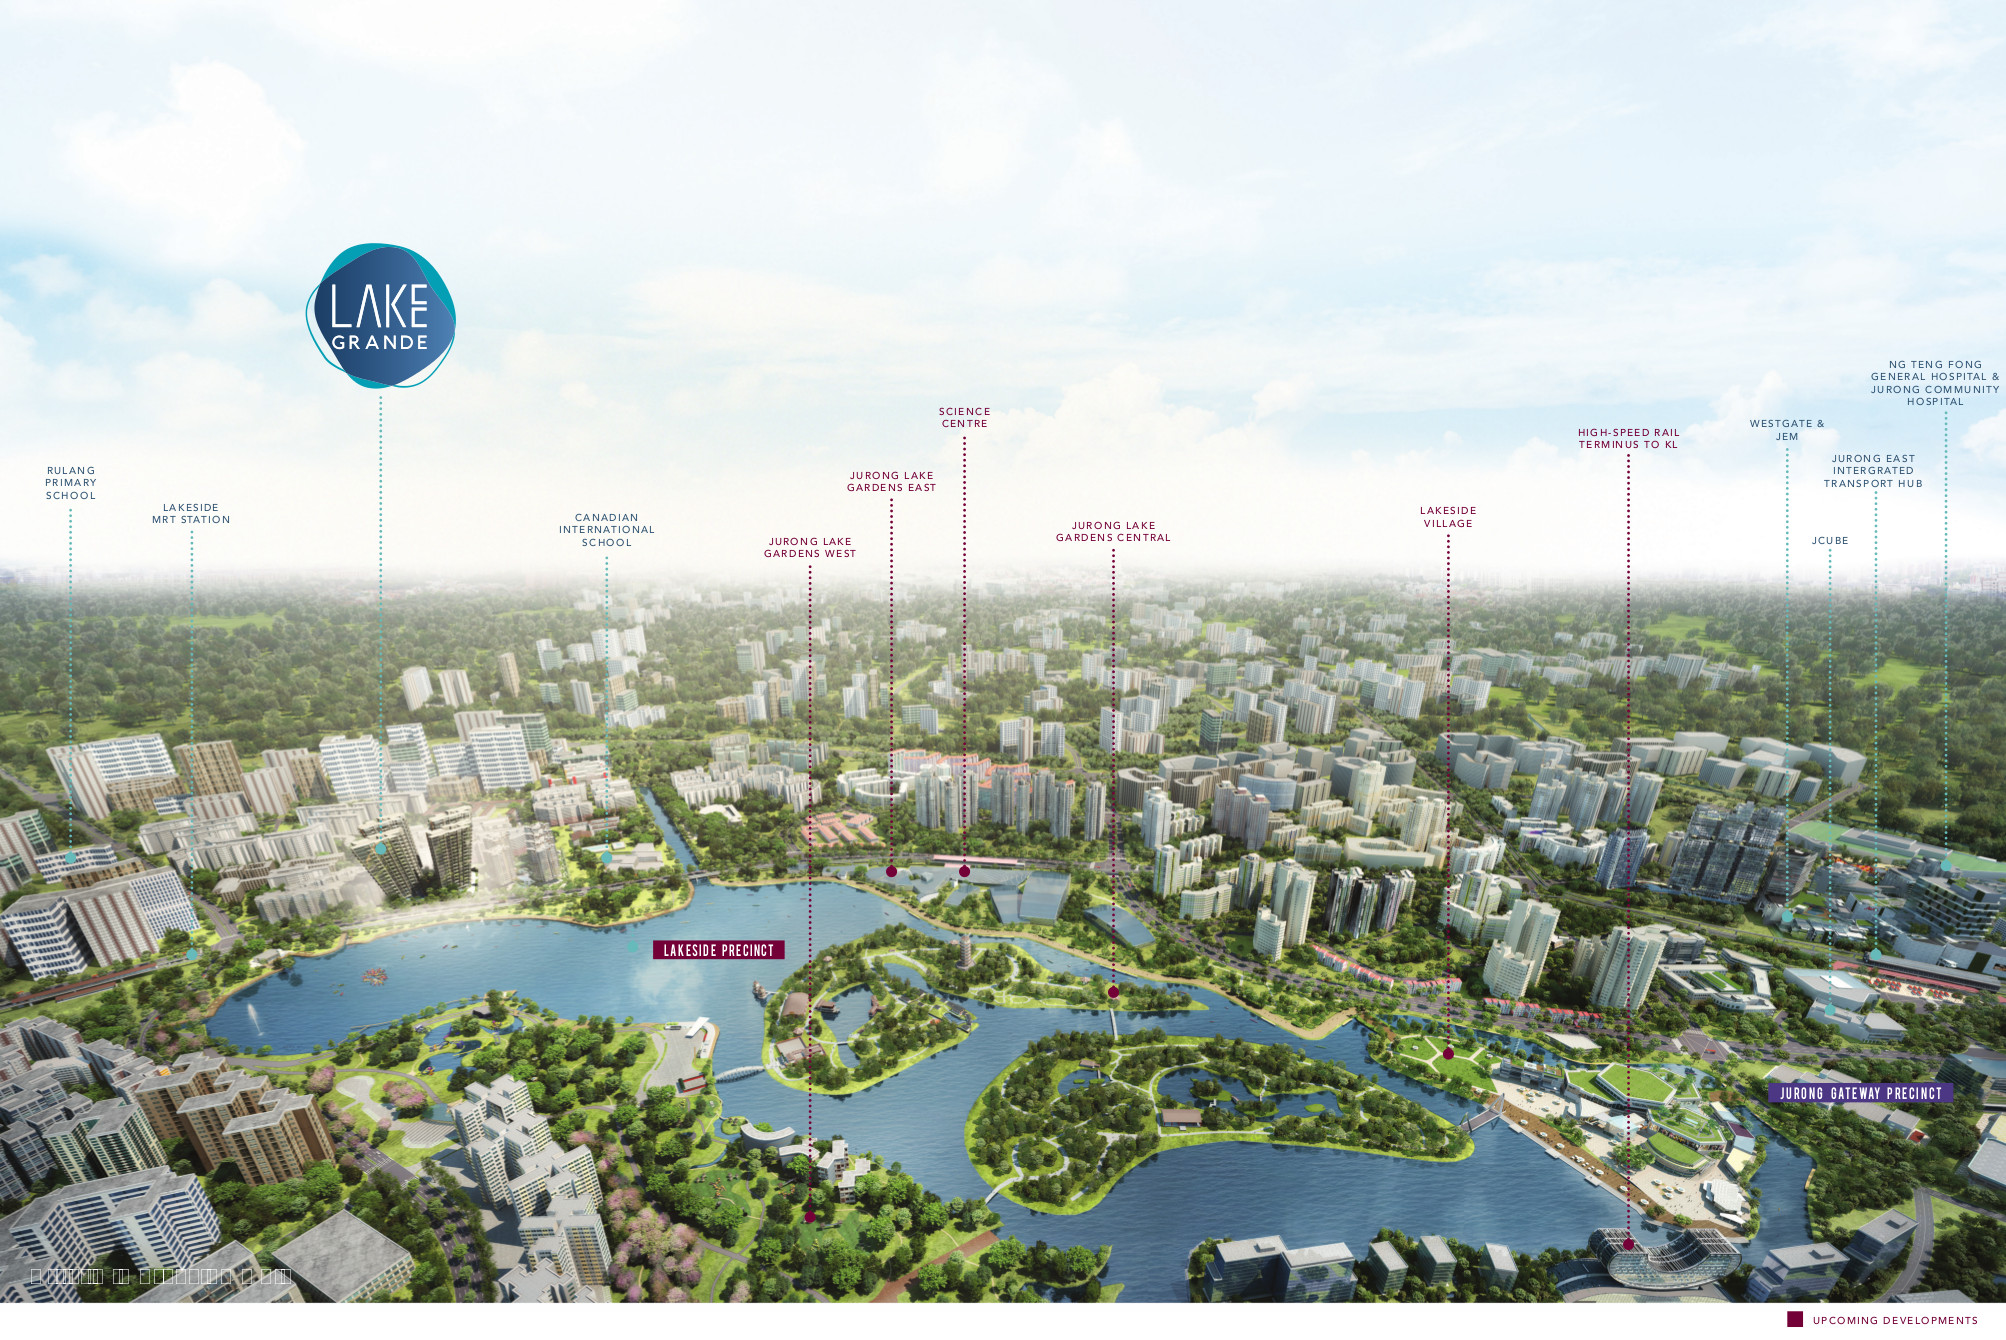 Lake Grande Location in Jurong Masterplan Growth Area